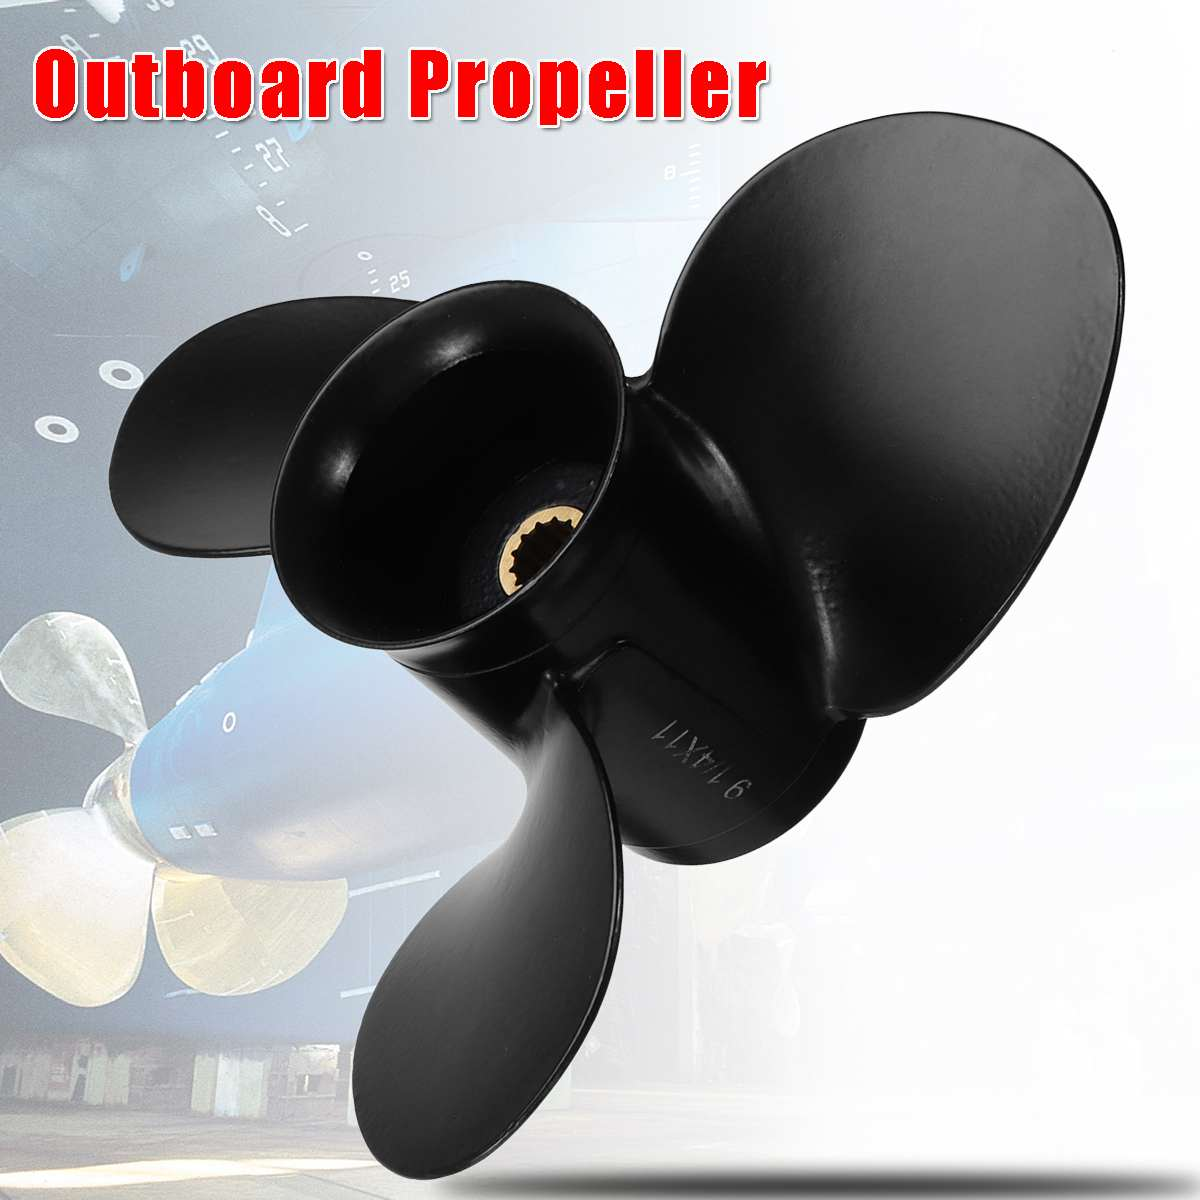 174817 / 778773 Aluminum Alloy 9 1/4 X 11 Outboard Propeller Black 3 Blades 13 Spline Tooth For Johnson/Evinrude/OMC 8-15HP